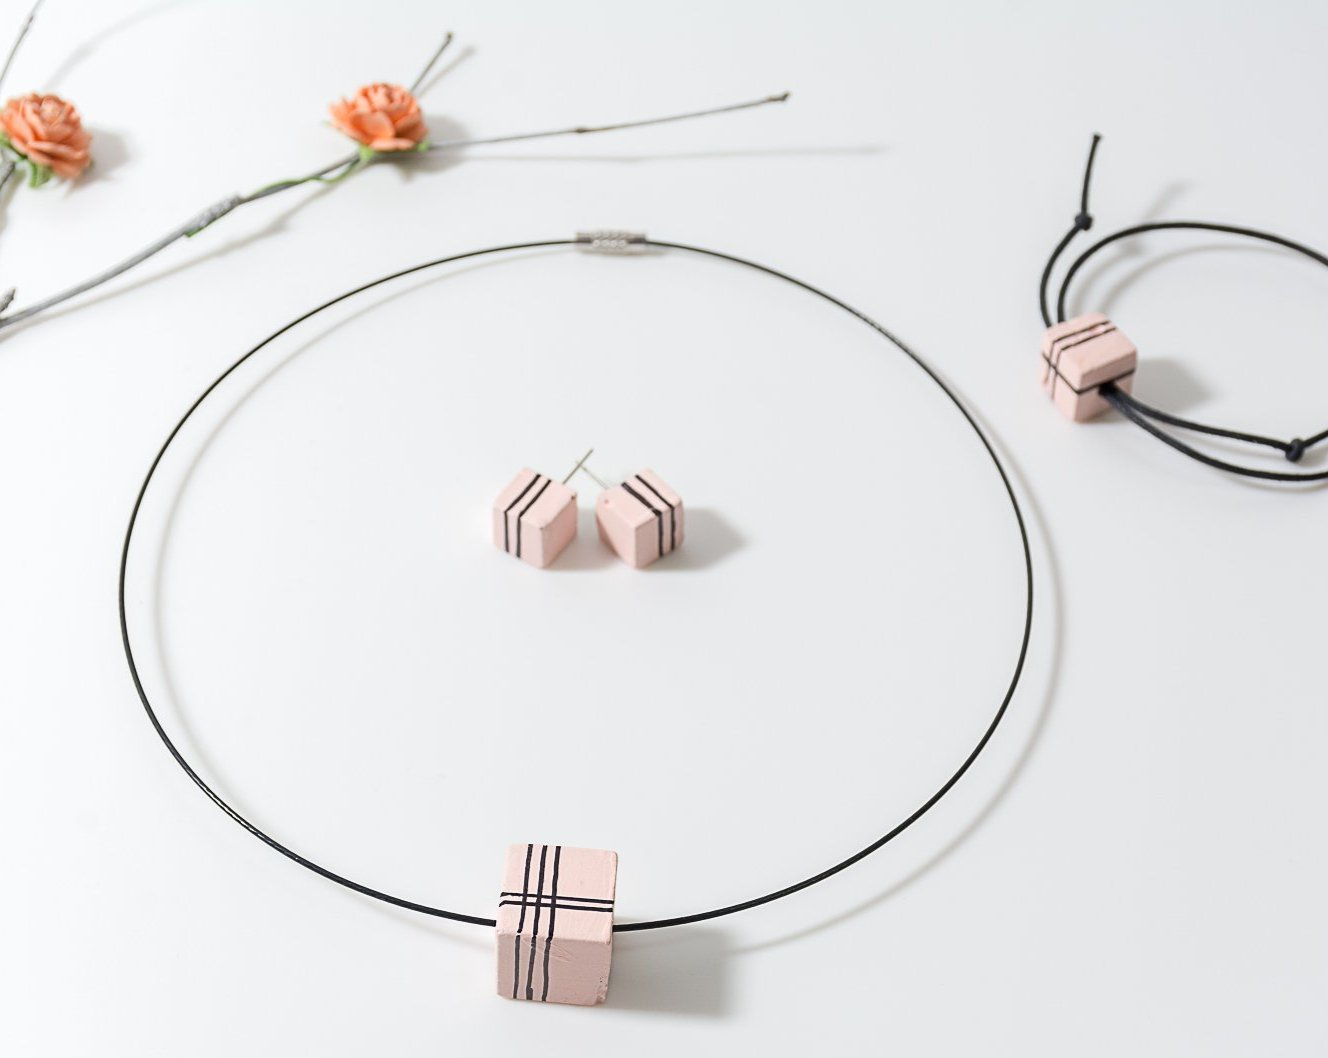 Peach Handpainted concrete chord Necklace ,Bracelet and Earing Set - Eliteearth